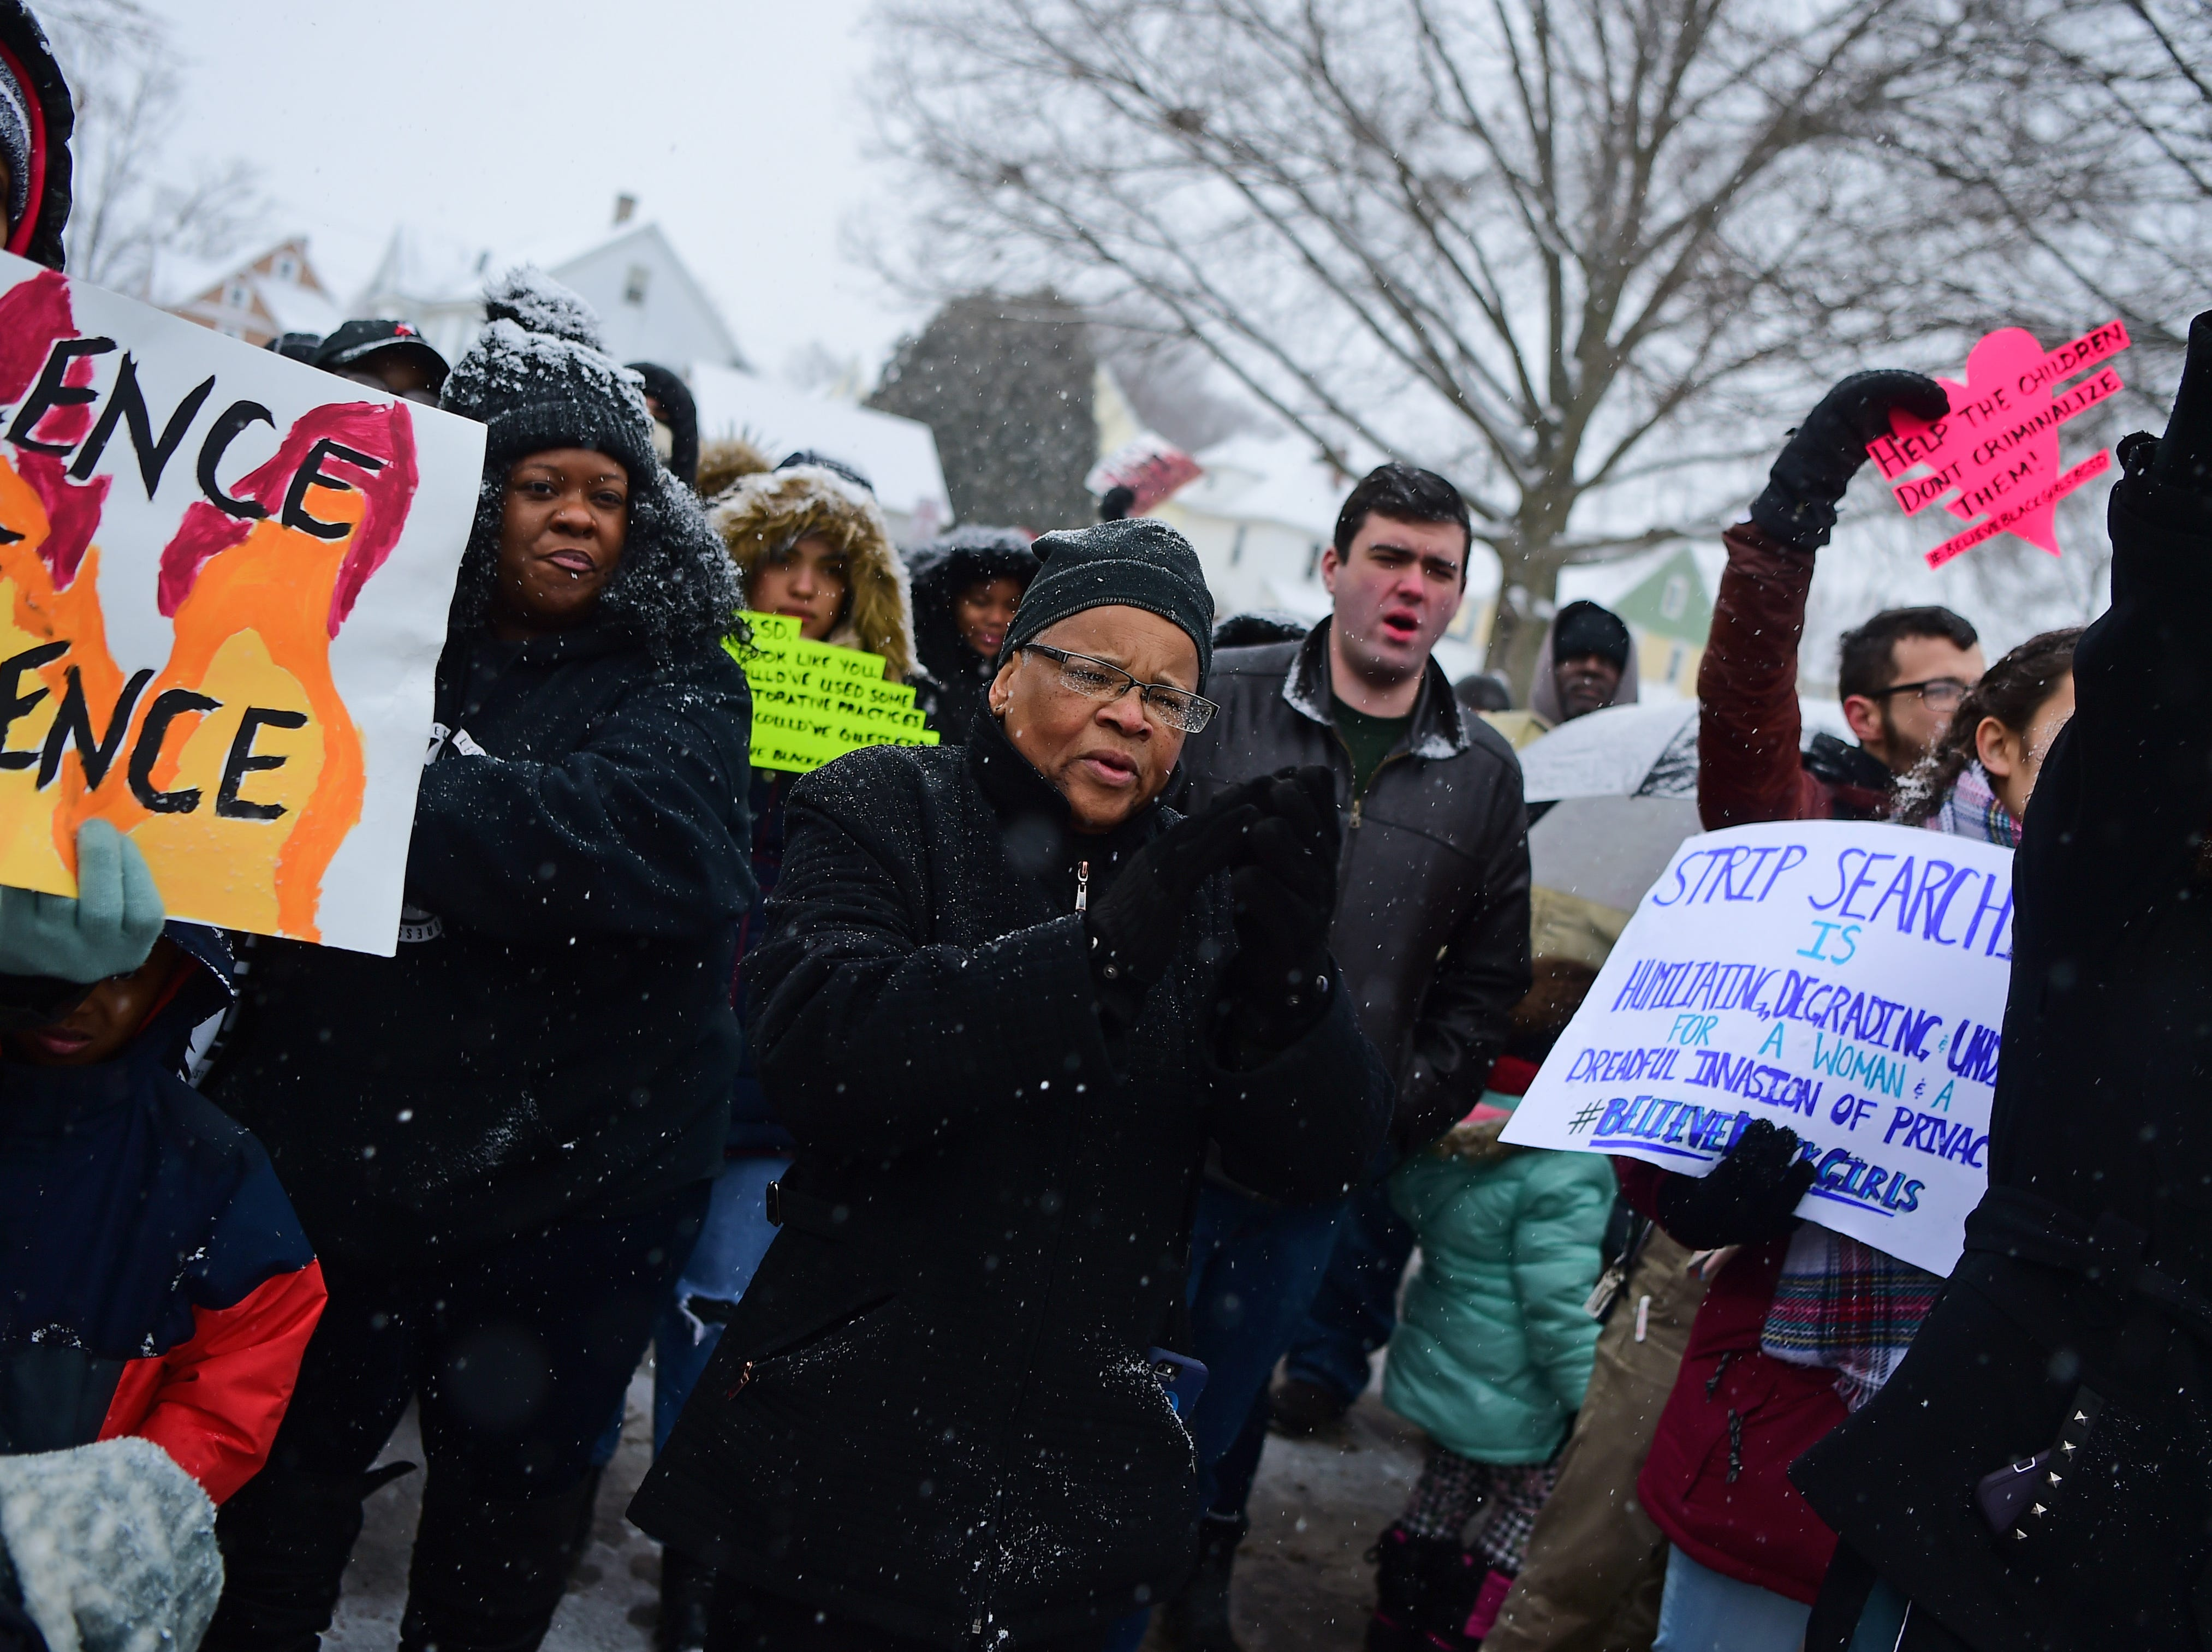 Community members, activists and members of Progressive Leaders Of Tomorrow (PLOT) rally in front of East Middle School in Binghamton to protest the recent alleged strip search of four female students. Tuesday, January 29, 2019.